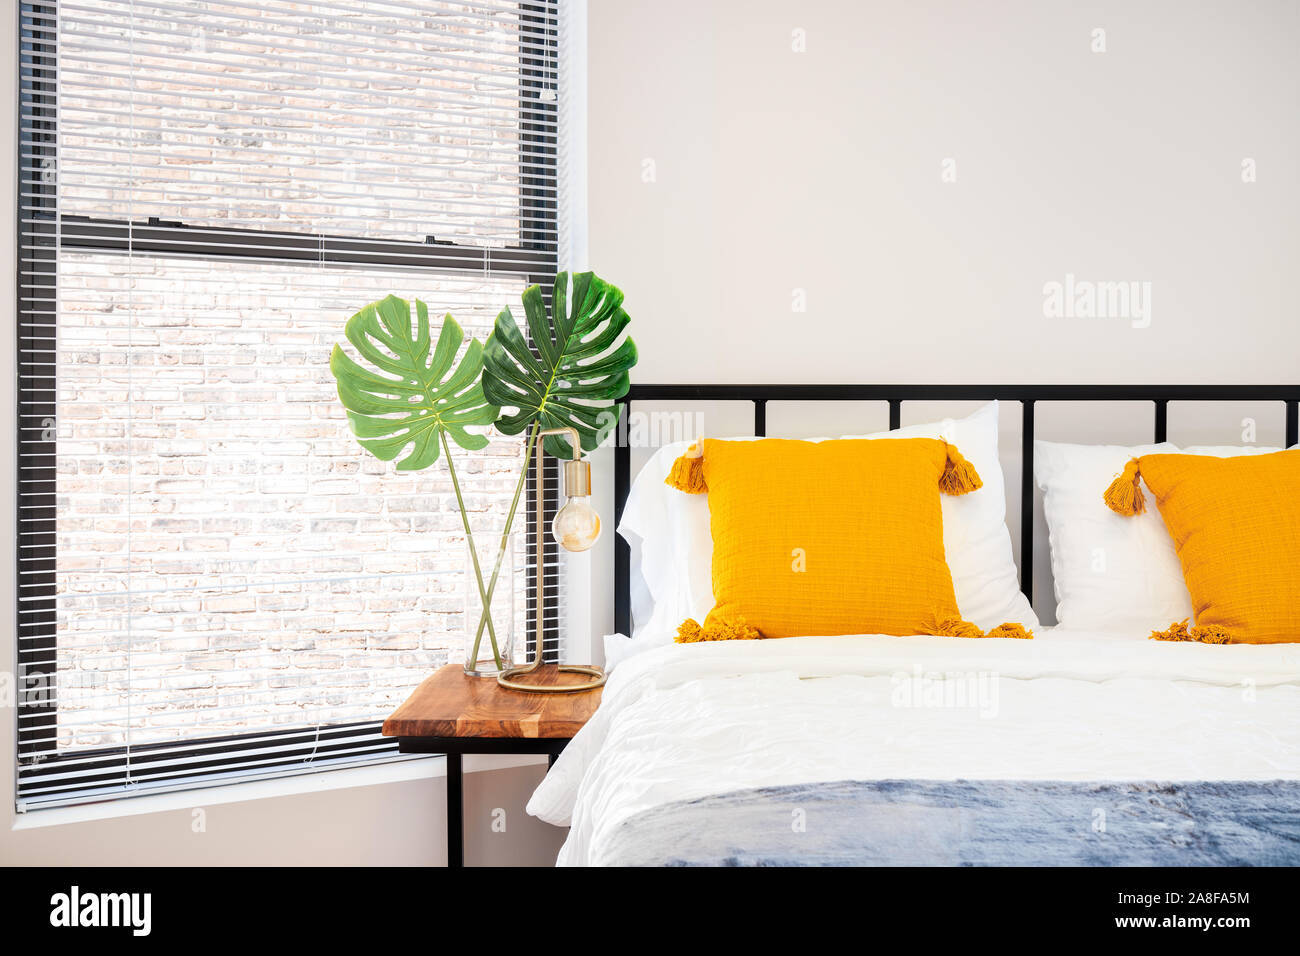 Accent Pillows High Resolution Stock Photography And Images Alamy